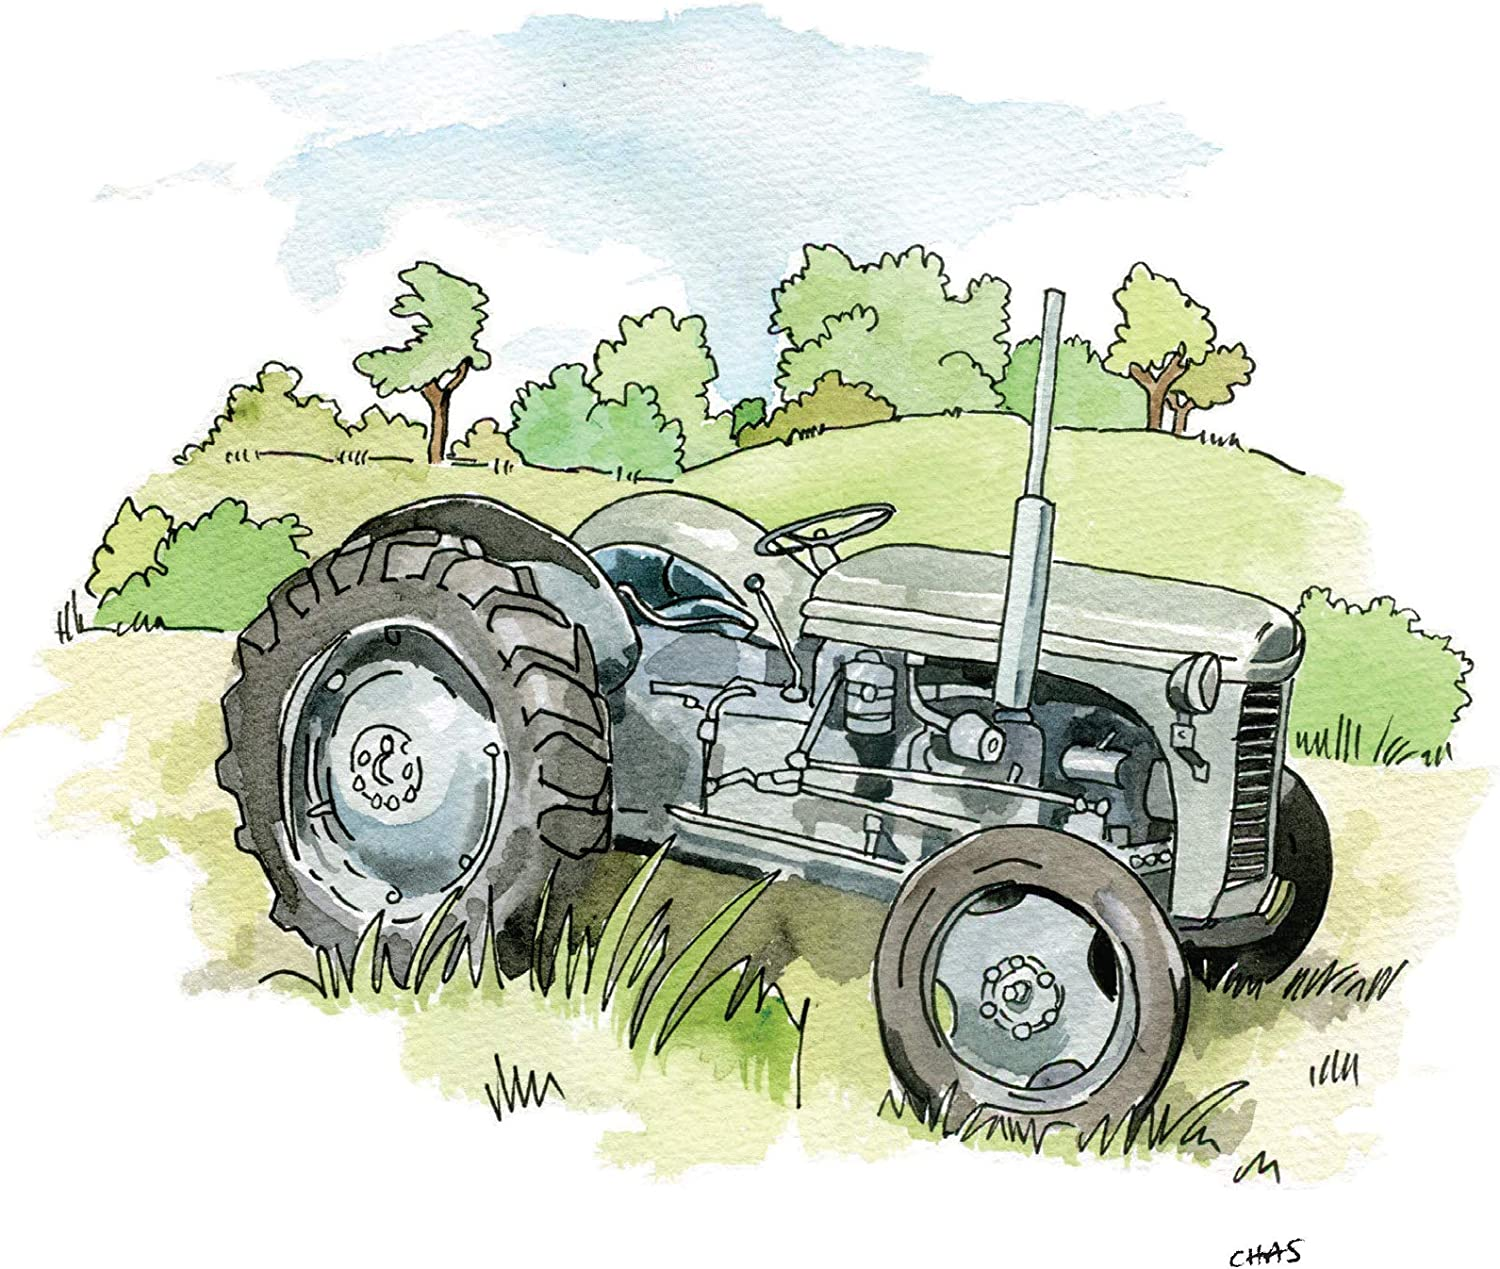 A5 Greeting Card Birthdays etc AC70 Blank Inside for Your own Message /& cellophane Wrapped with Envelope Invitations Grey Ferguson Tractor for Thank yous